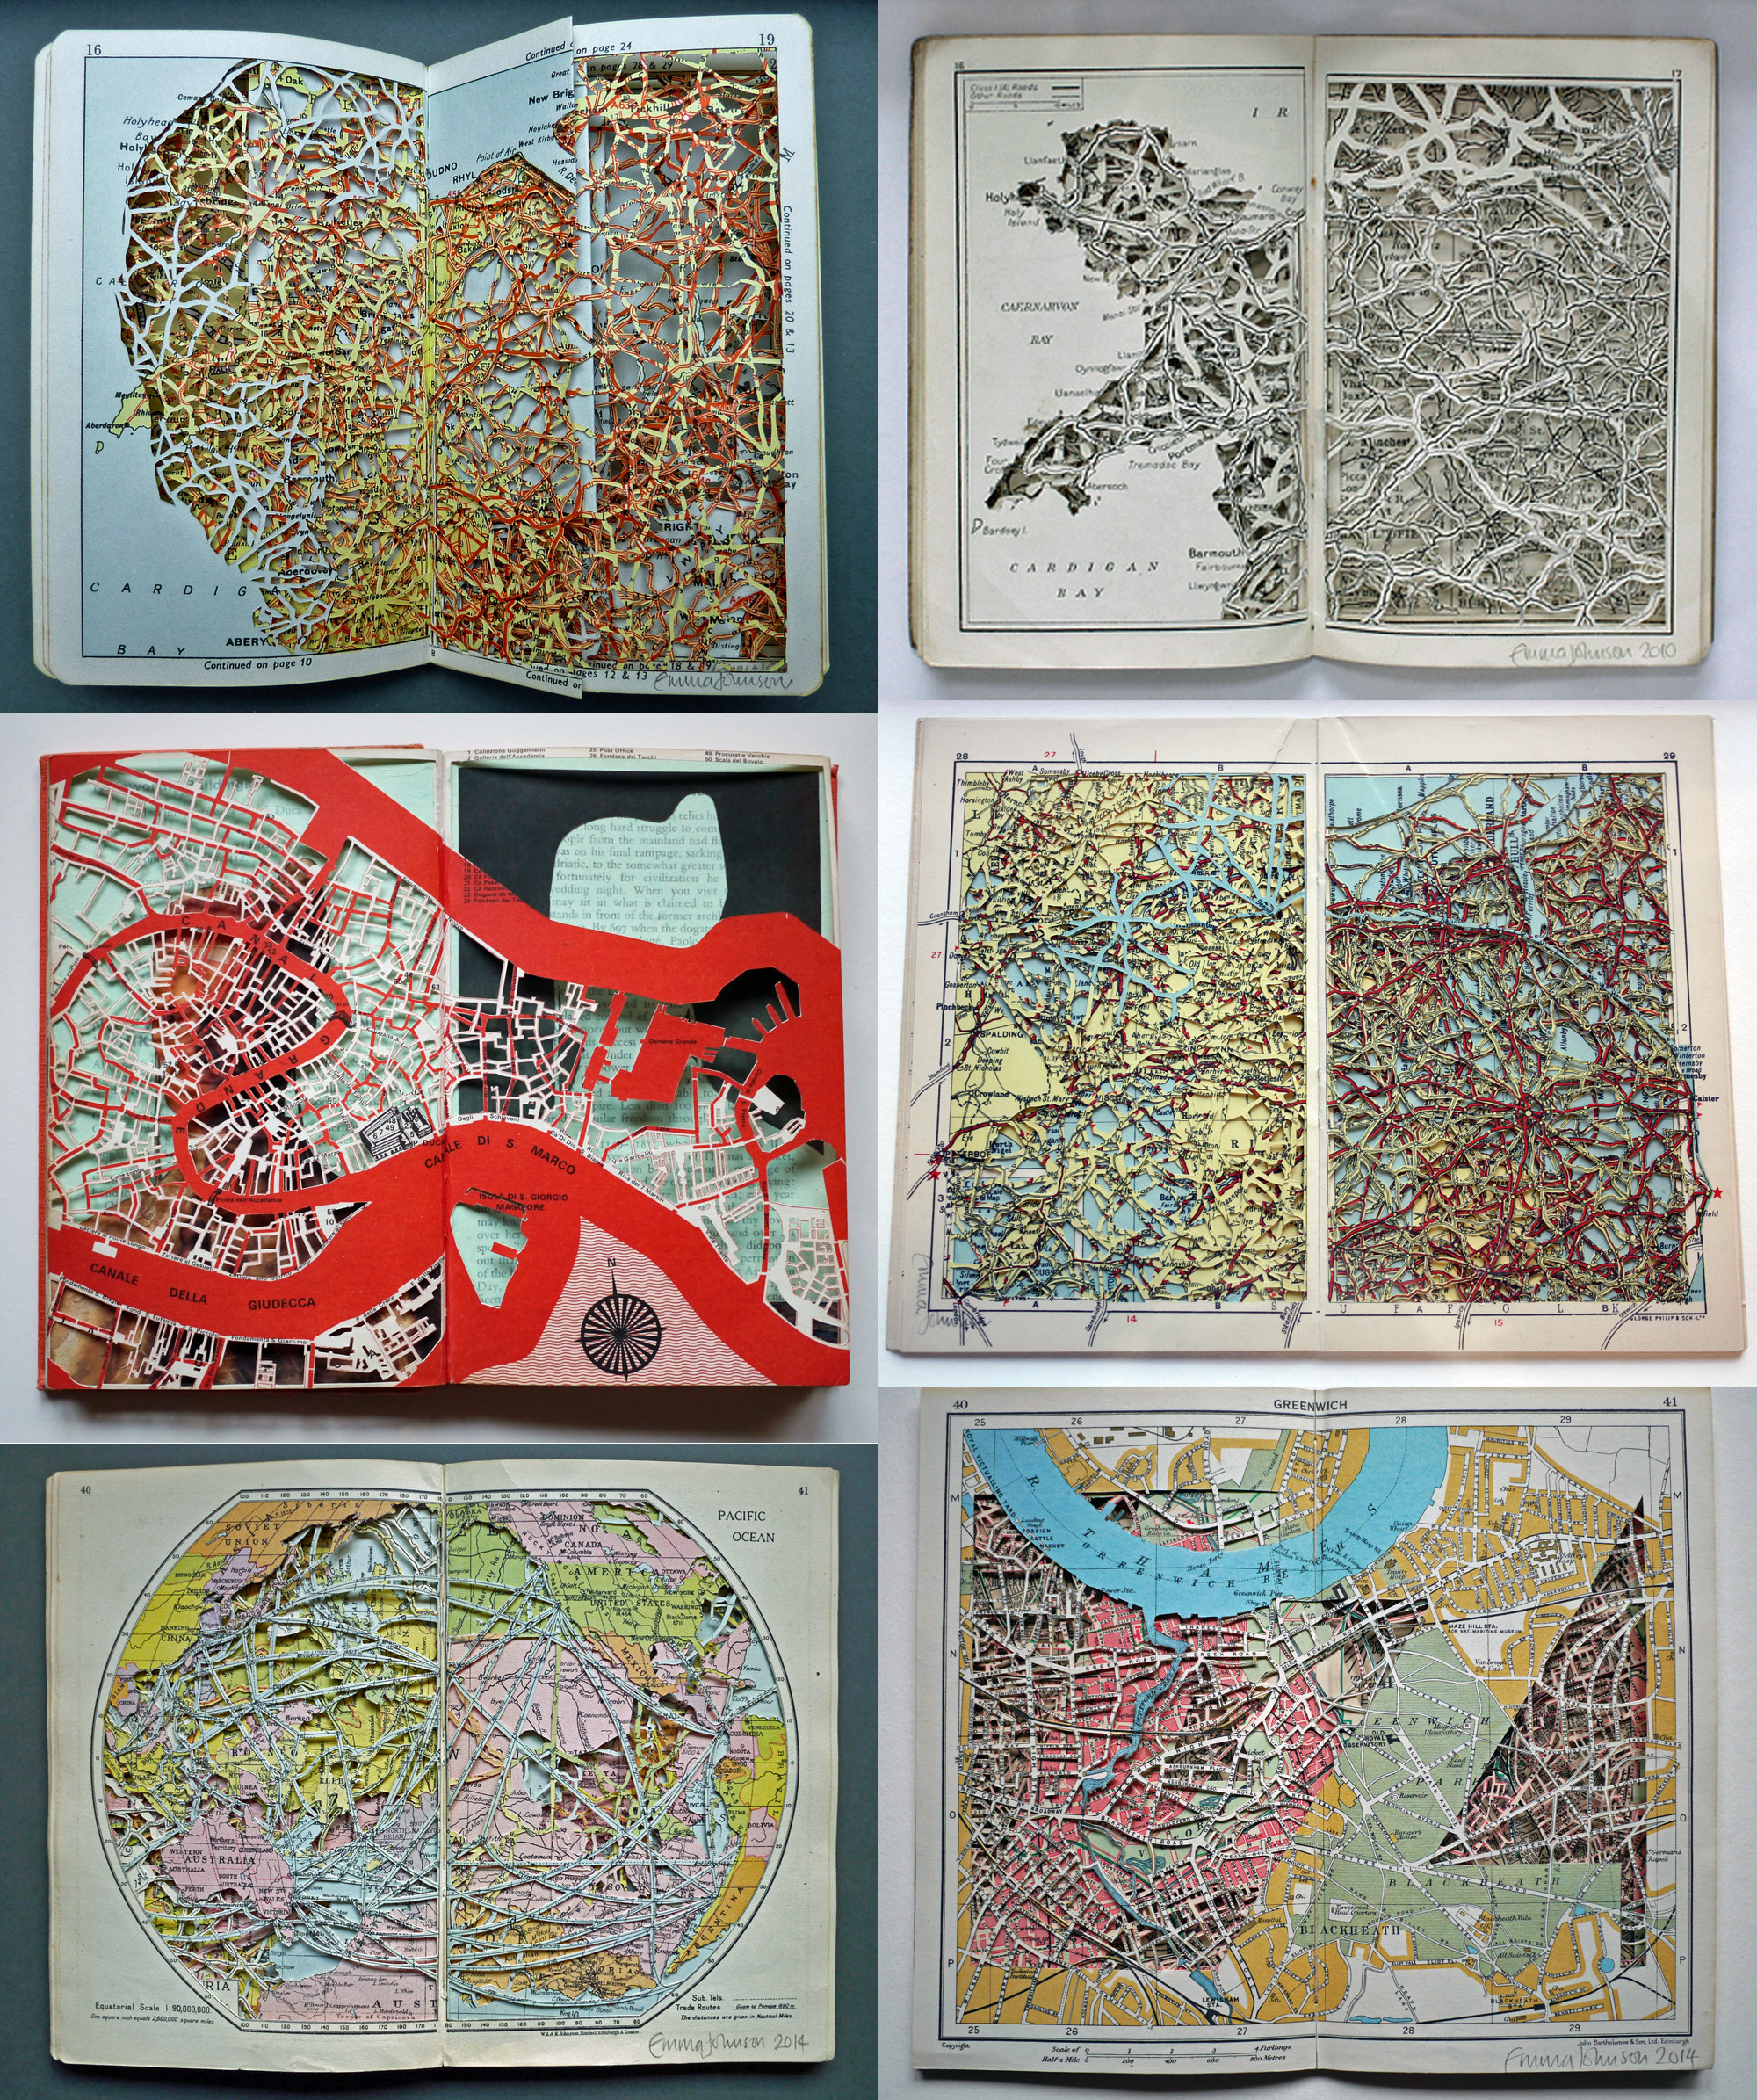 (Emma Johnson) Dissected Atlases